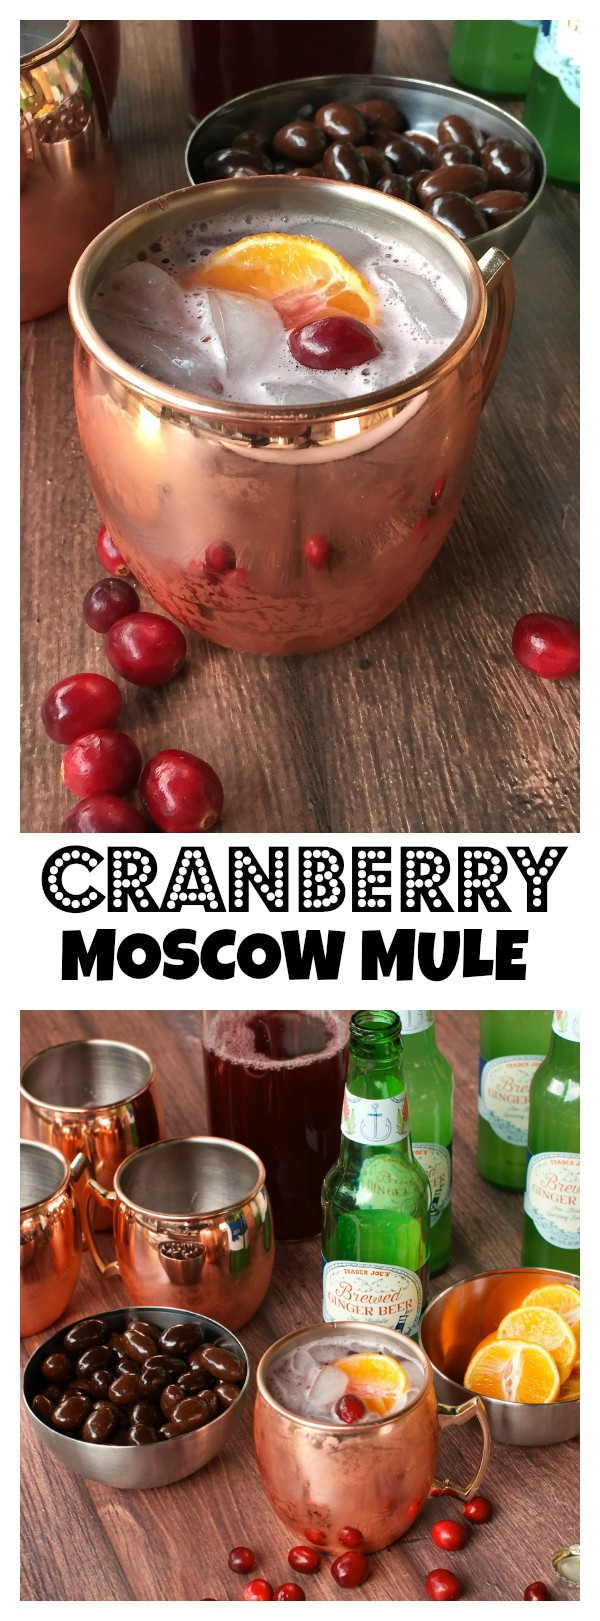 Delicious for the holidays: Cranberry Moscow Mule drink recipe